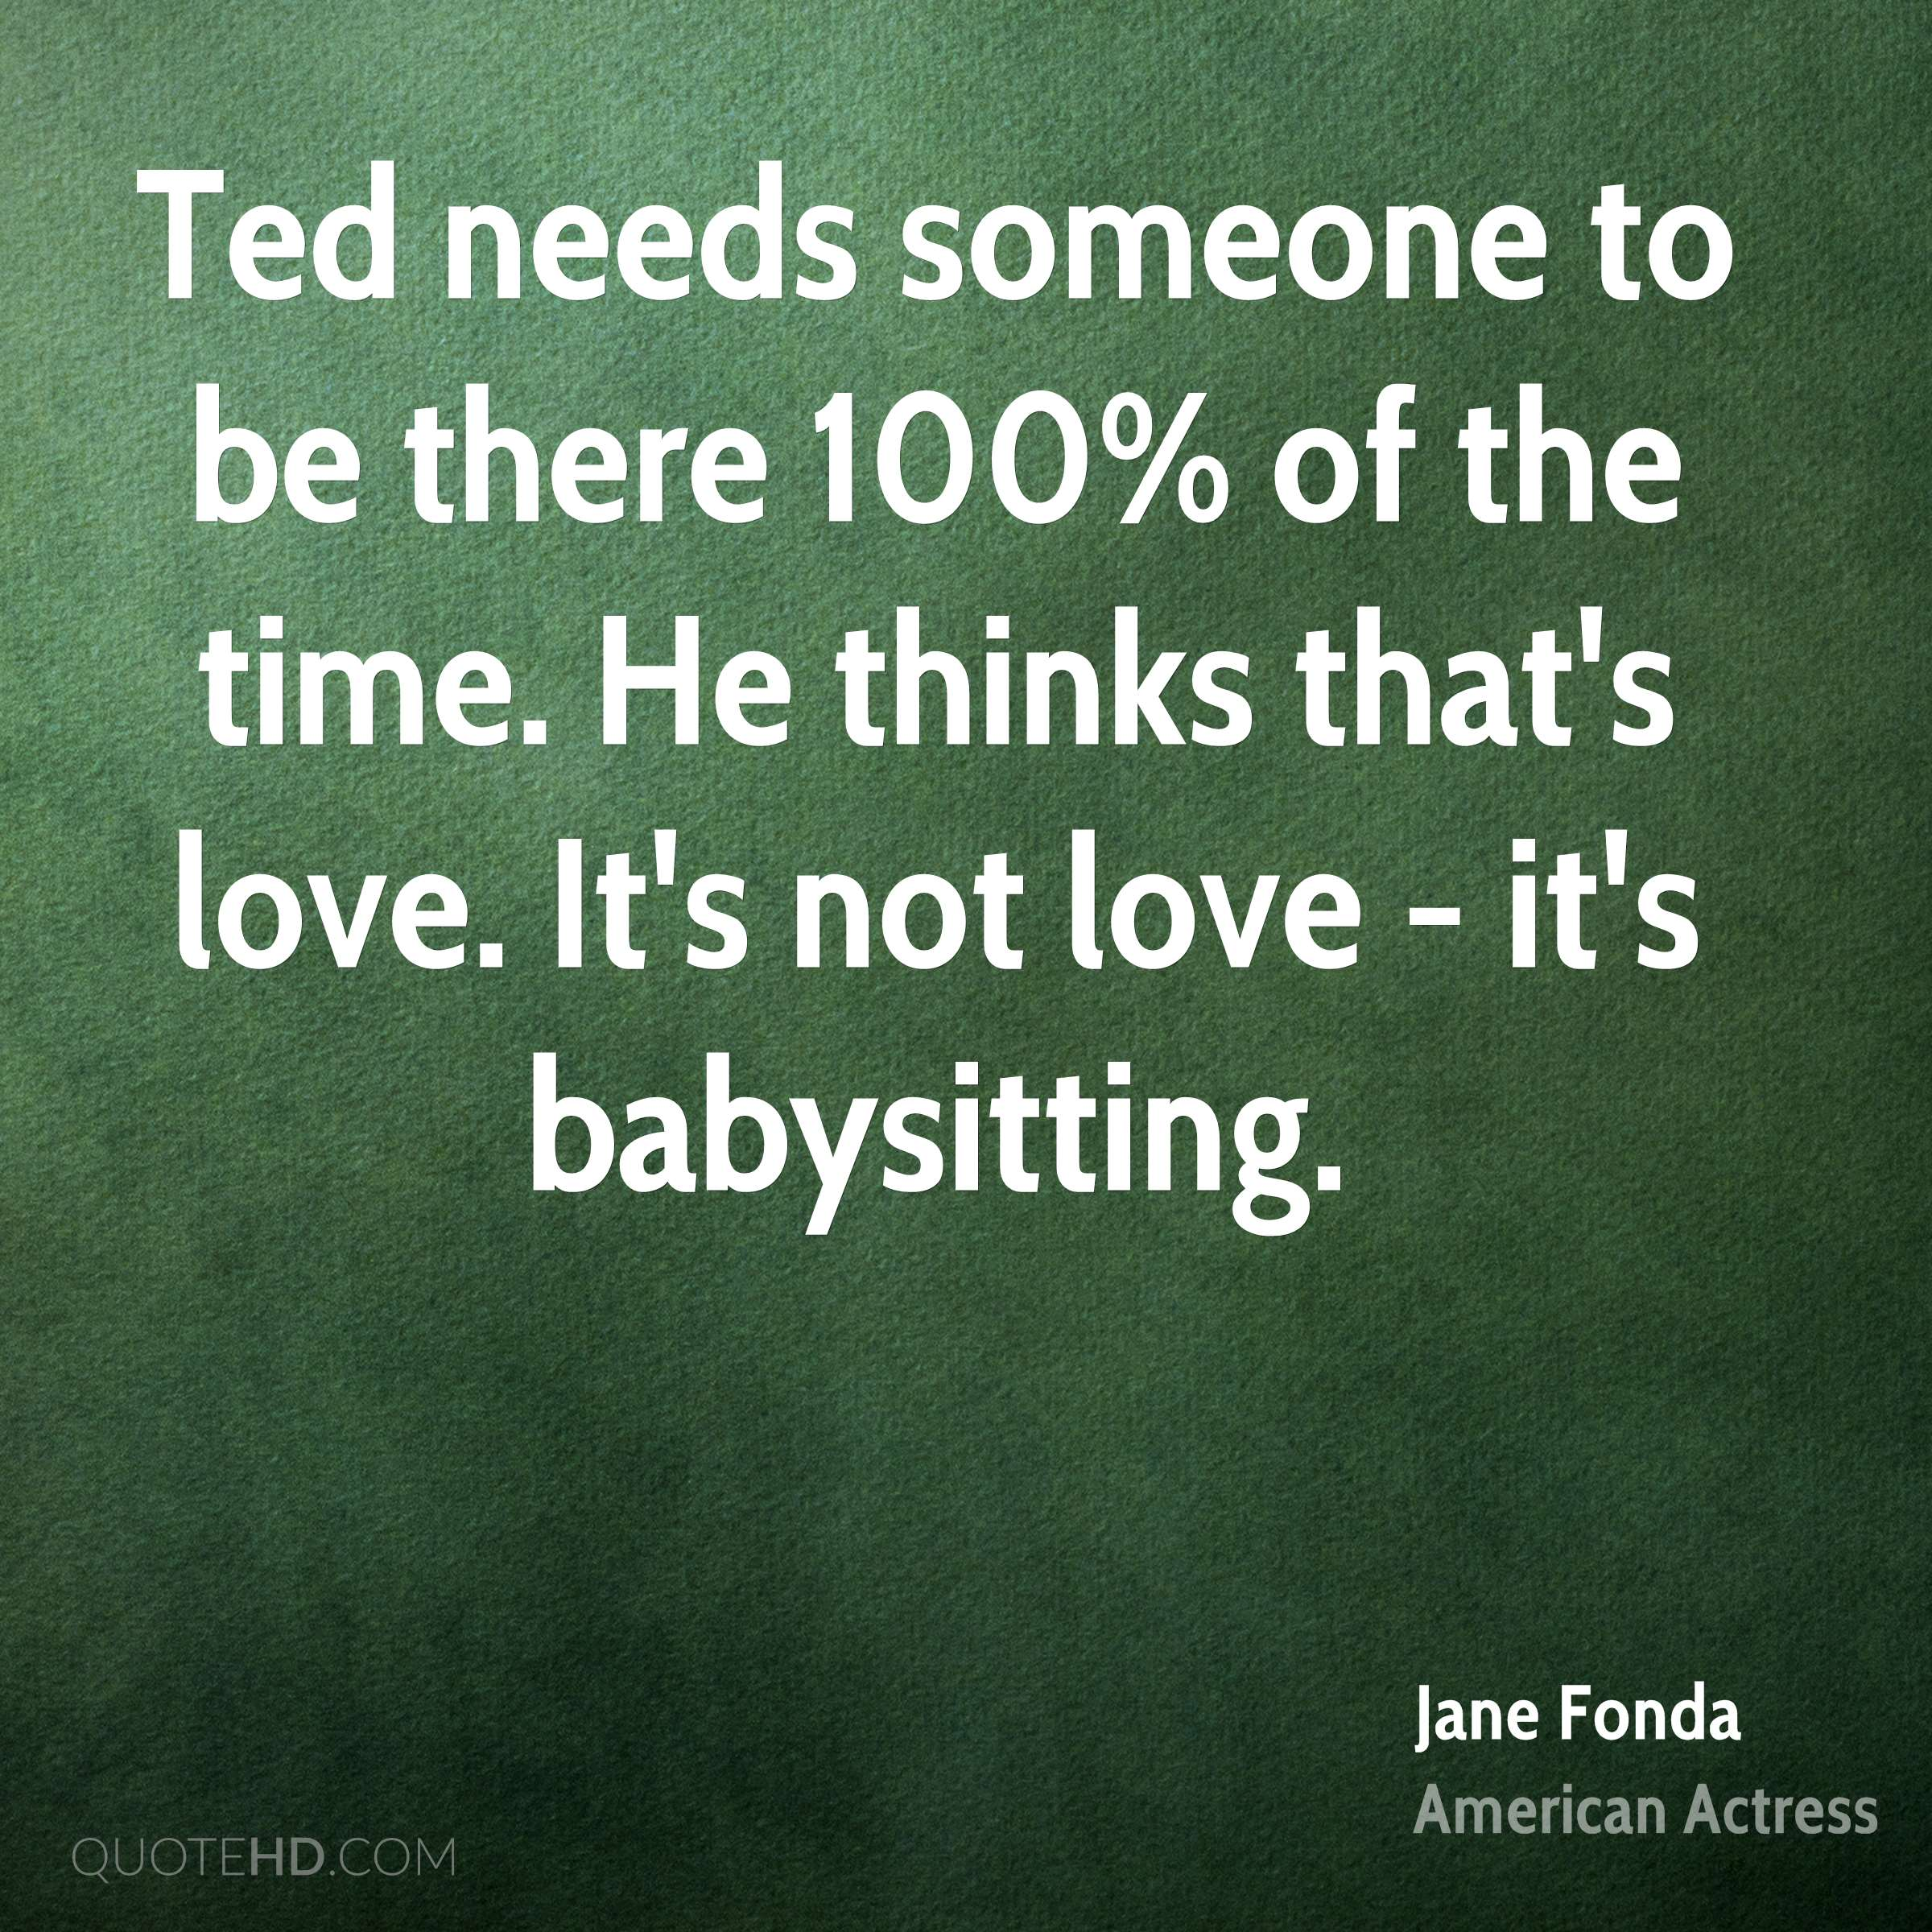 Ted needs someone to be there 100% of the time. He thinks that's love. It's not love - it's babysitting.